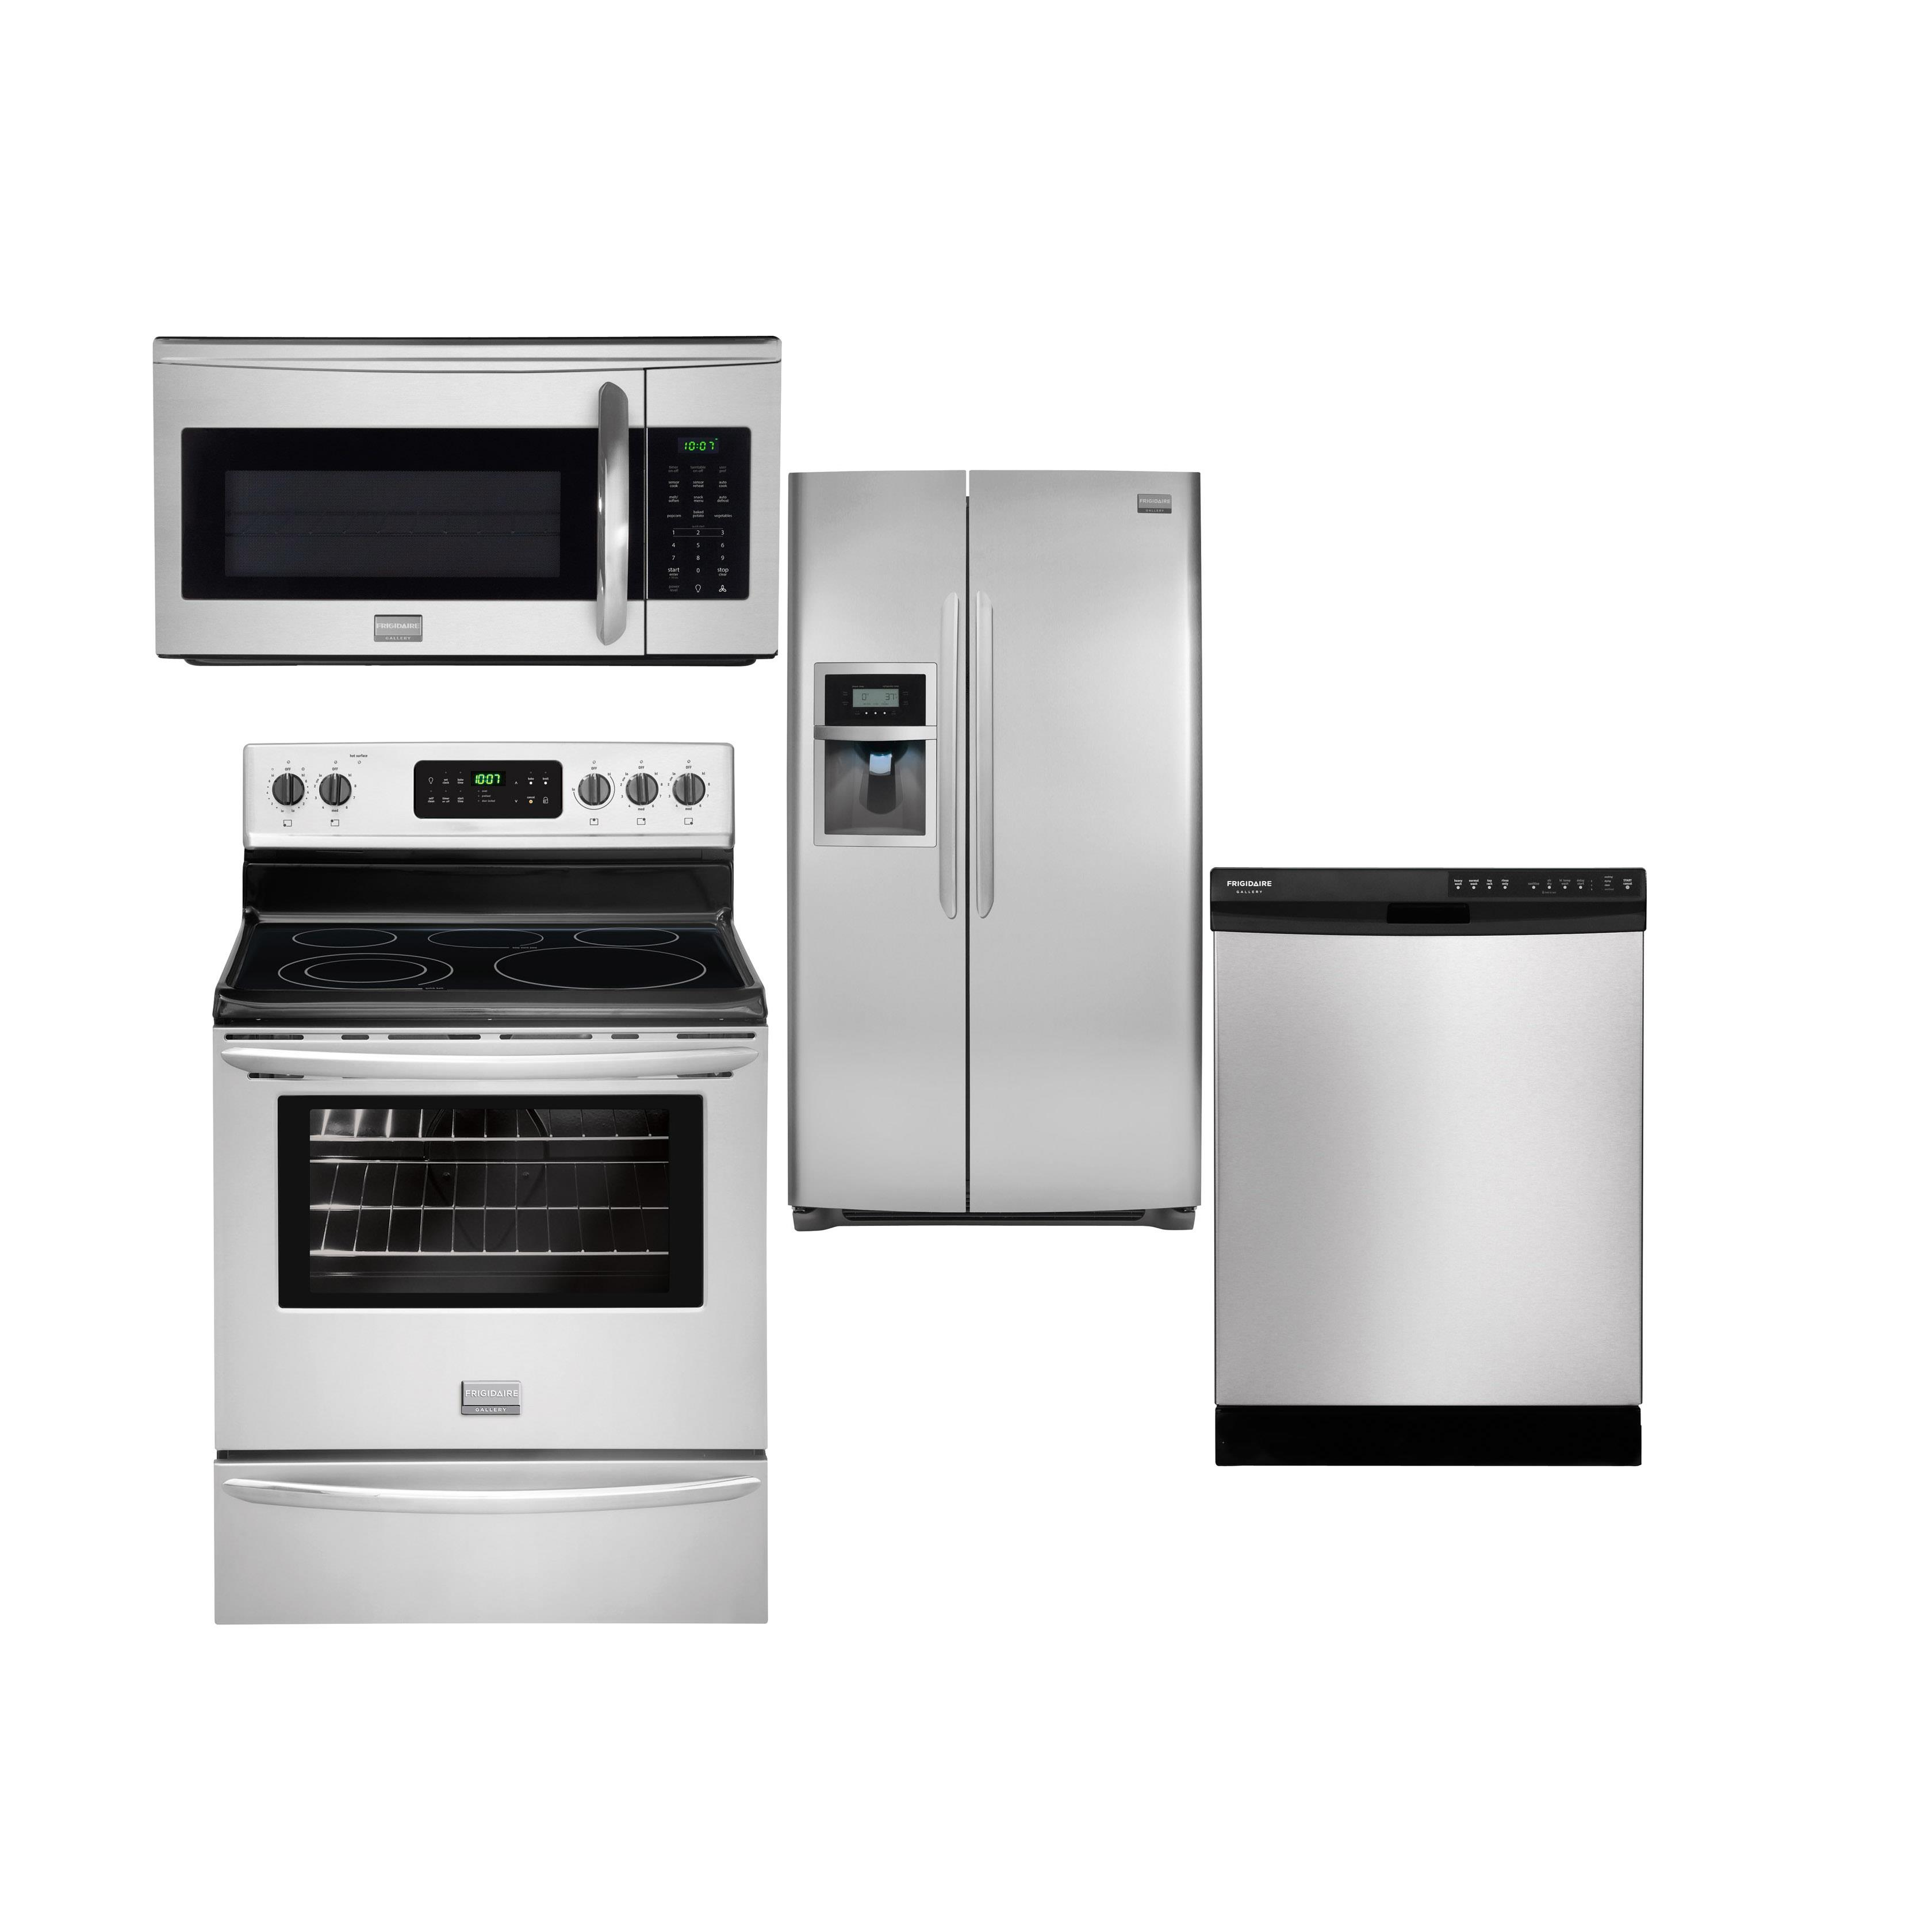 Frigidaire Frigidaire Gallery Electric Ranges 4 Piece Frigidaire Gallery Appliance Package - Item Number: FGEF3030PF+Package